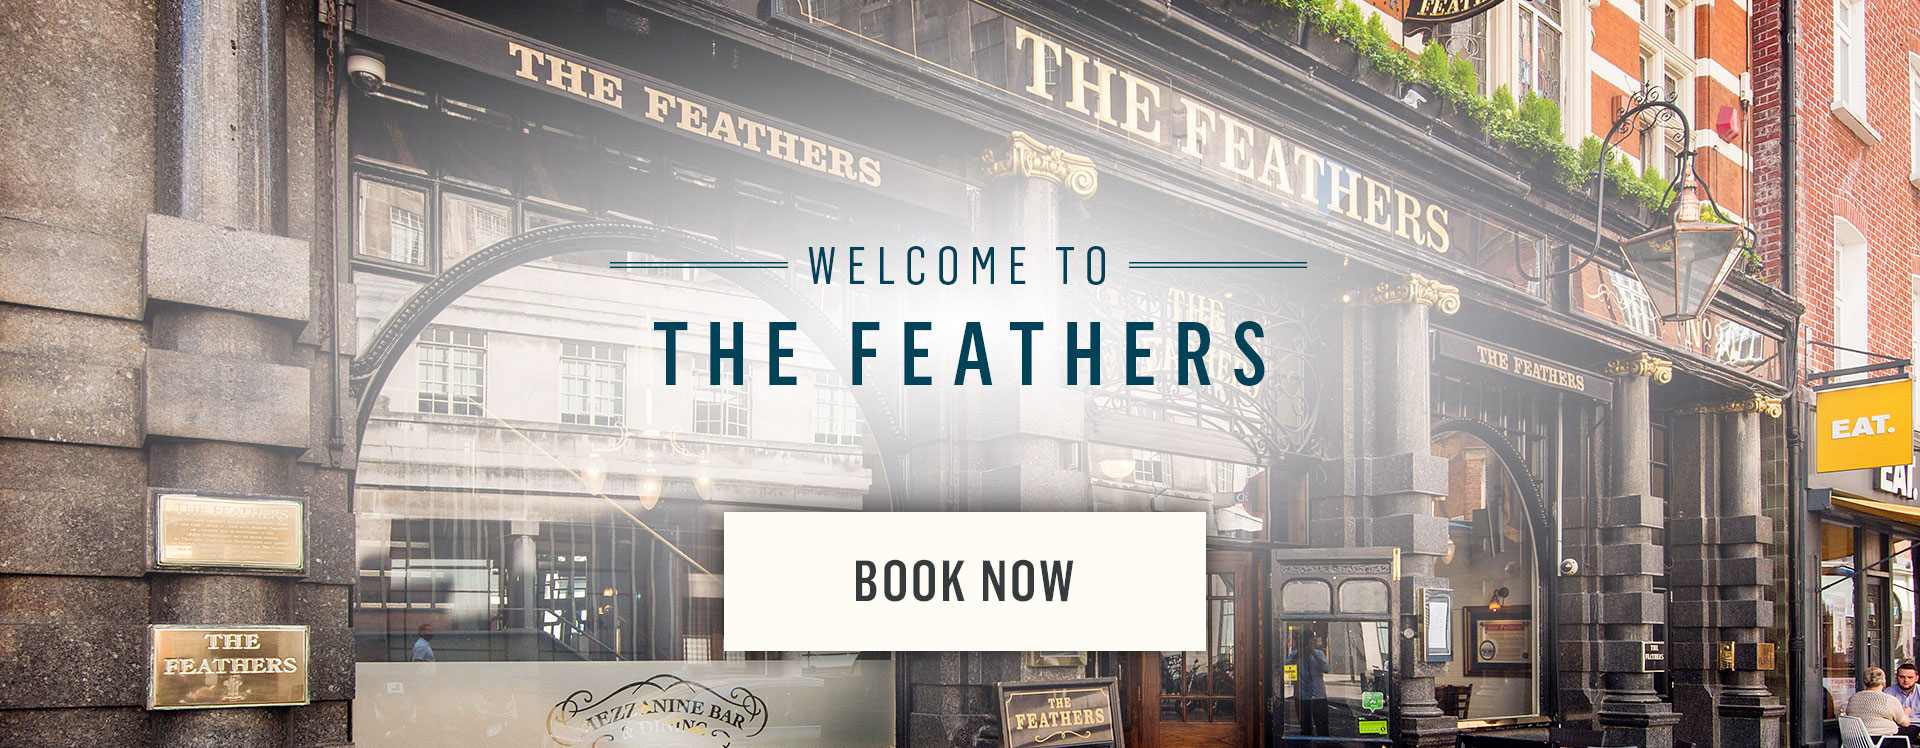 Welcome to The Feathers - Book Now